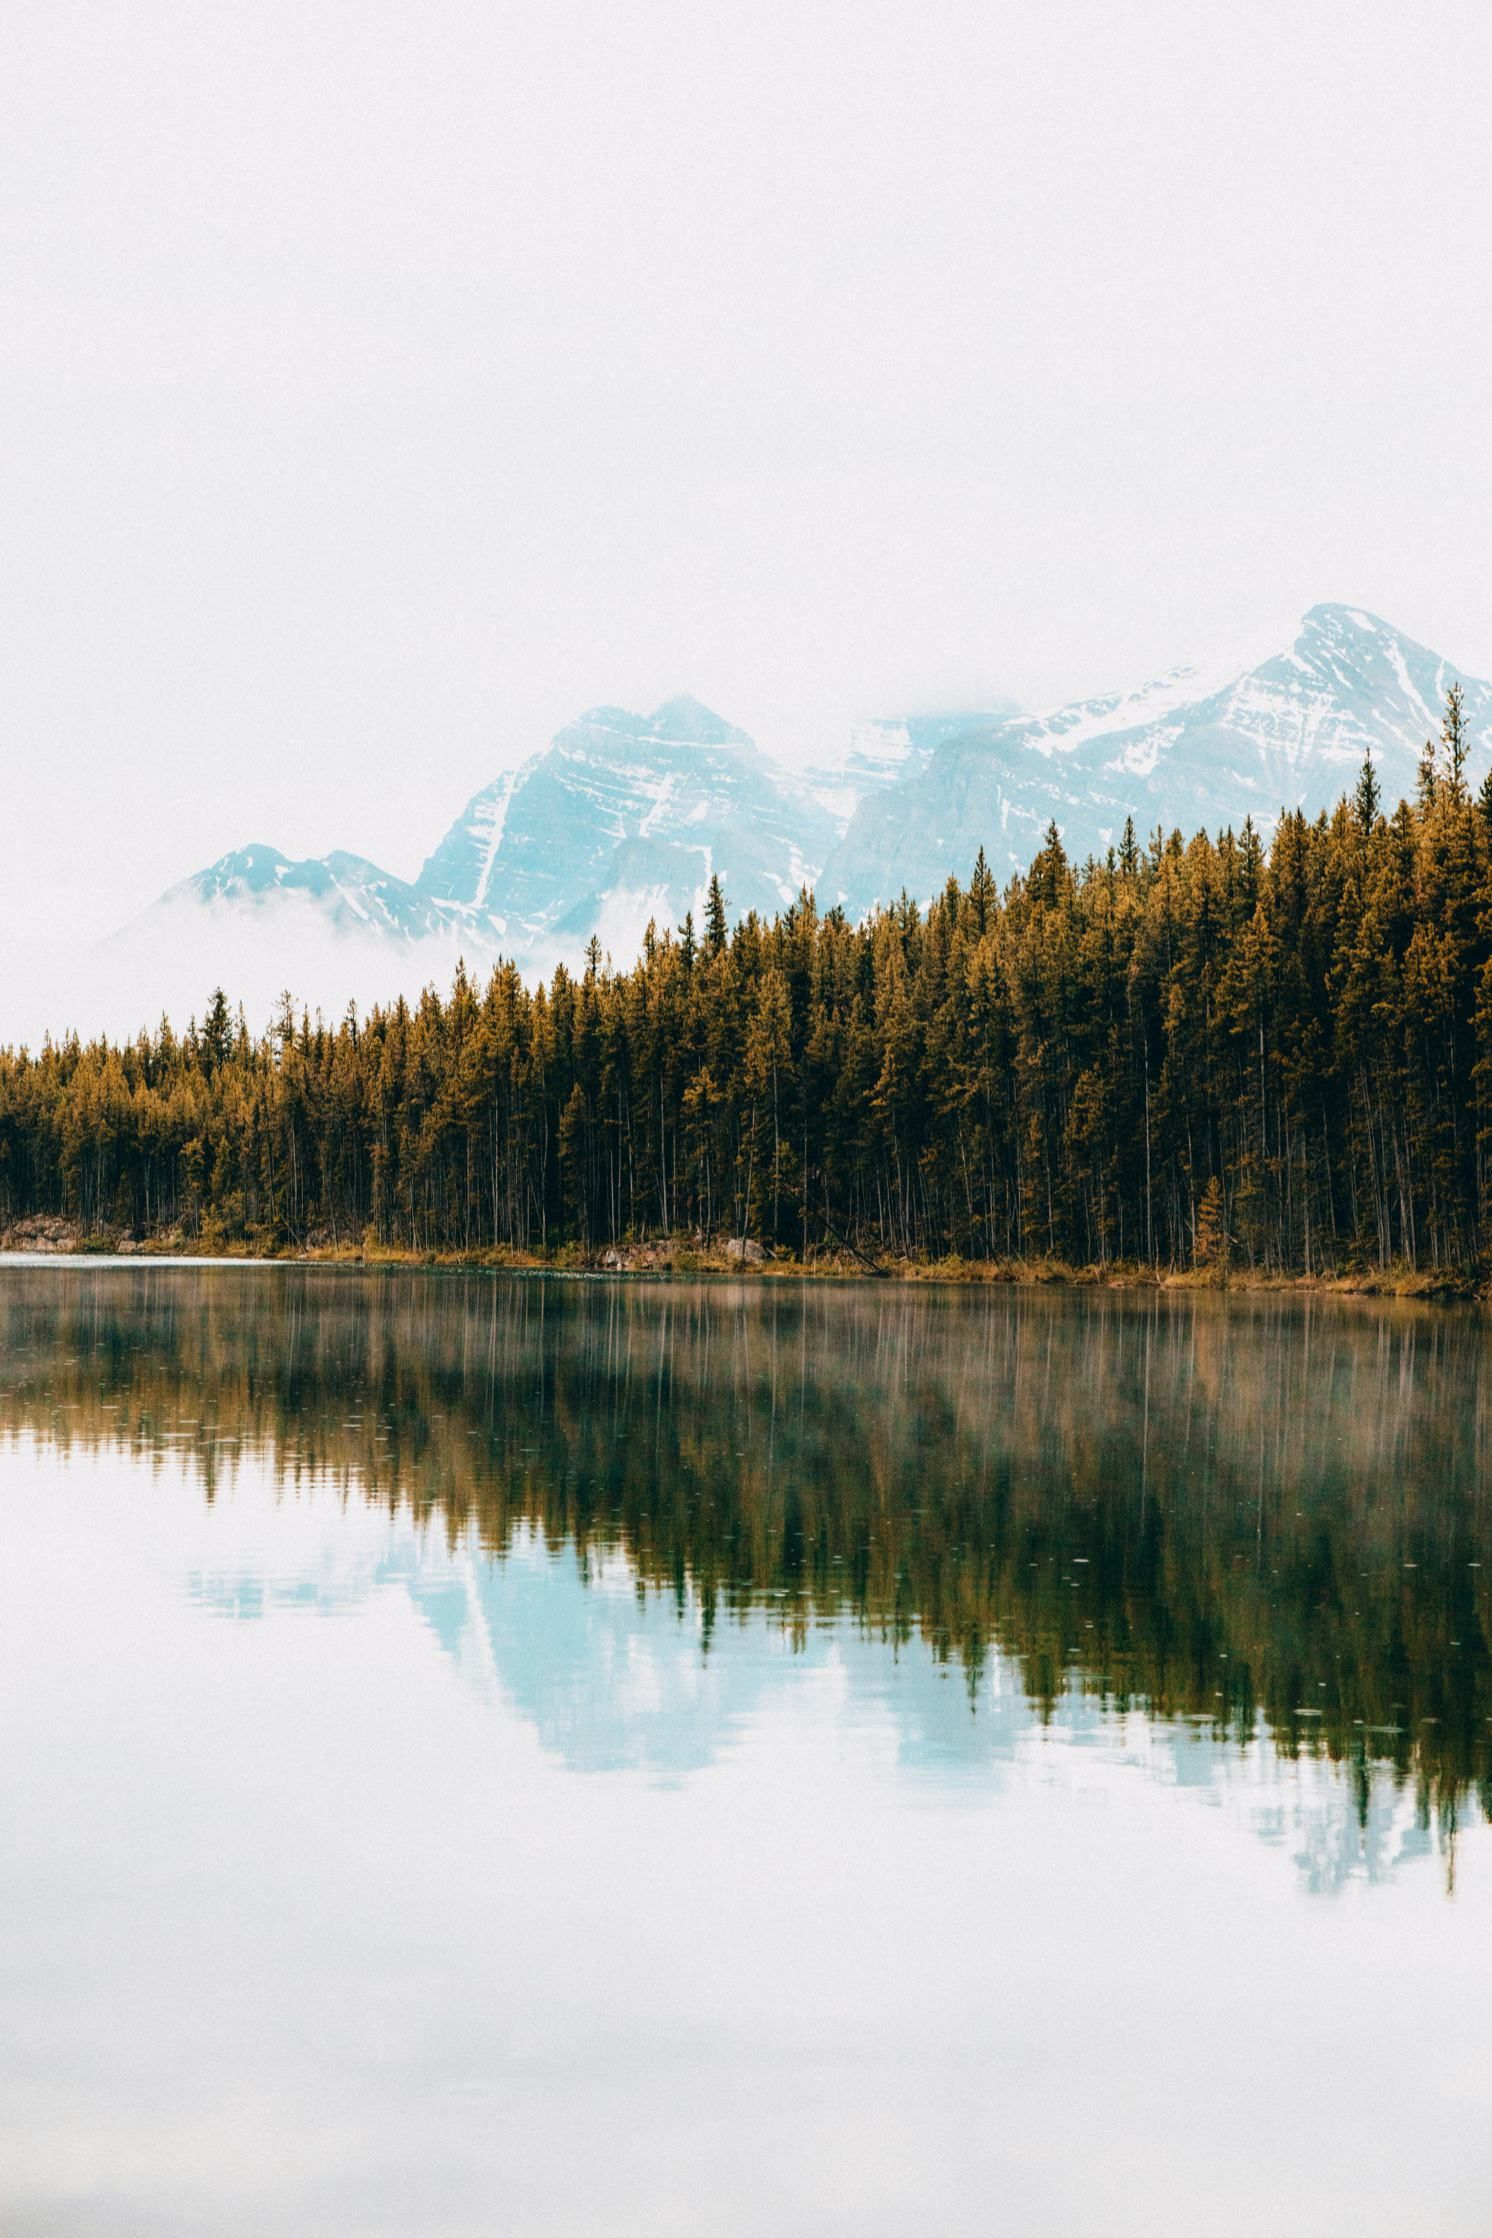 The 8 Most Amazing Photo Spots In Jasper National Park #landscapephoto